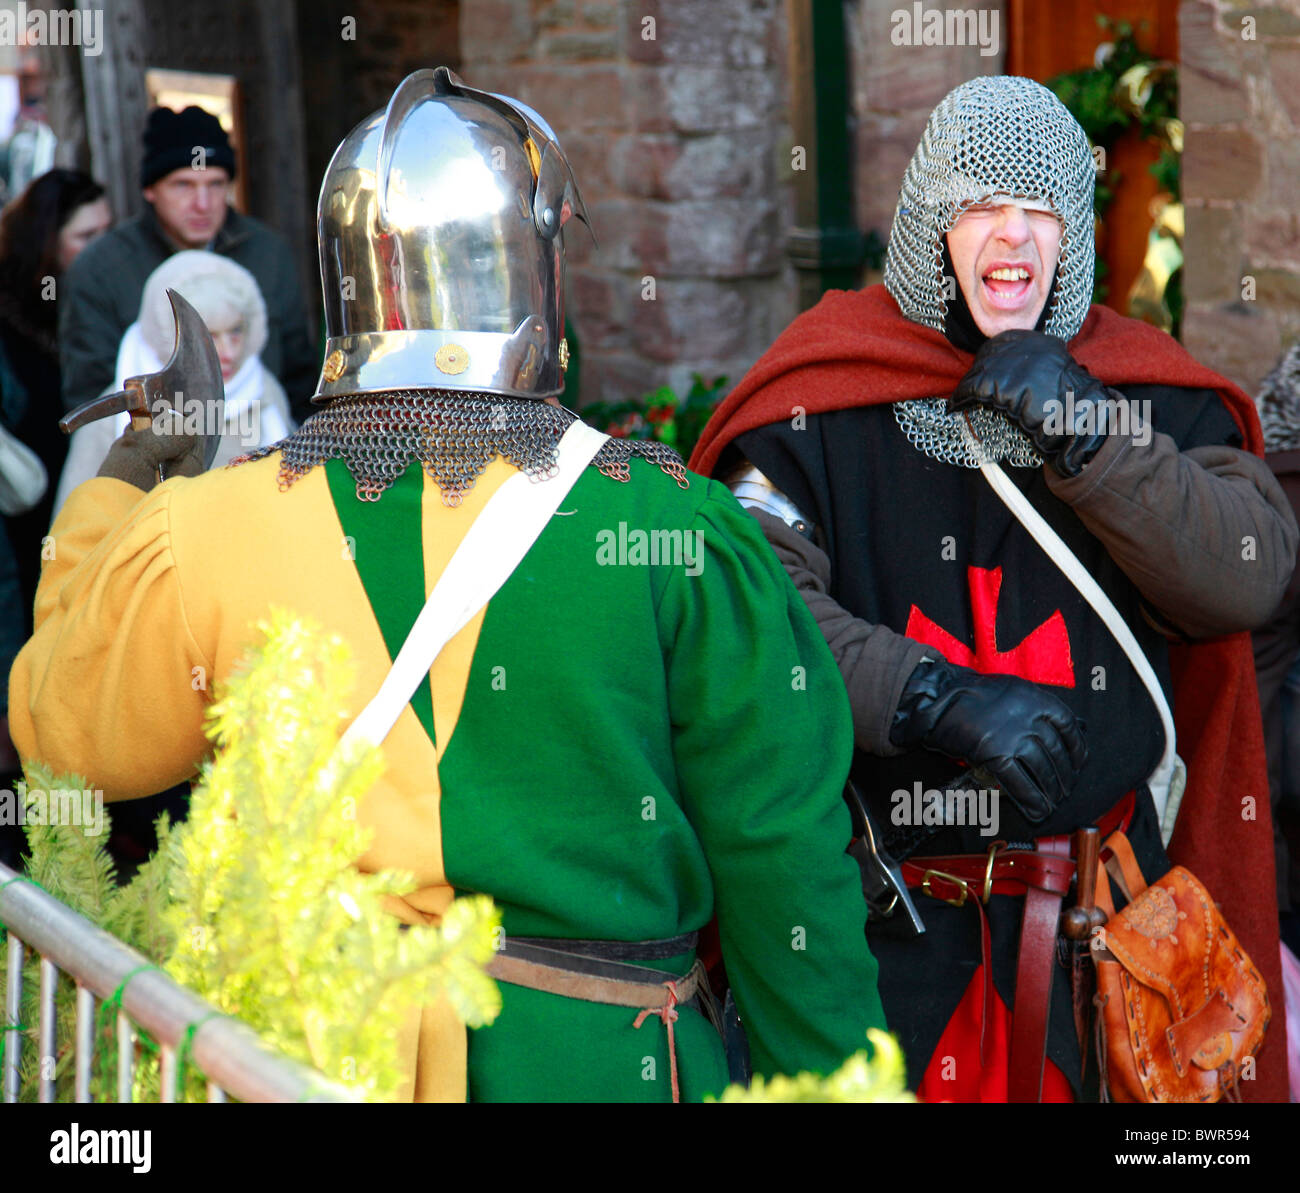 Two men dressed in medieval soldiers armour and clothing at a country fair in Ludlow,Shropshire - Stock Image